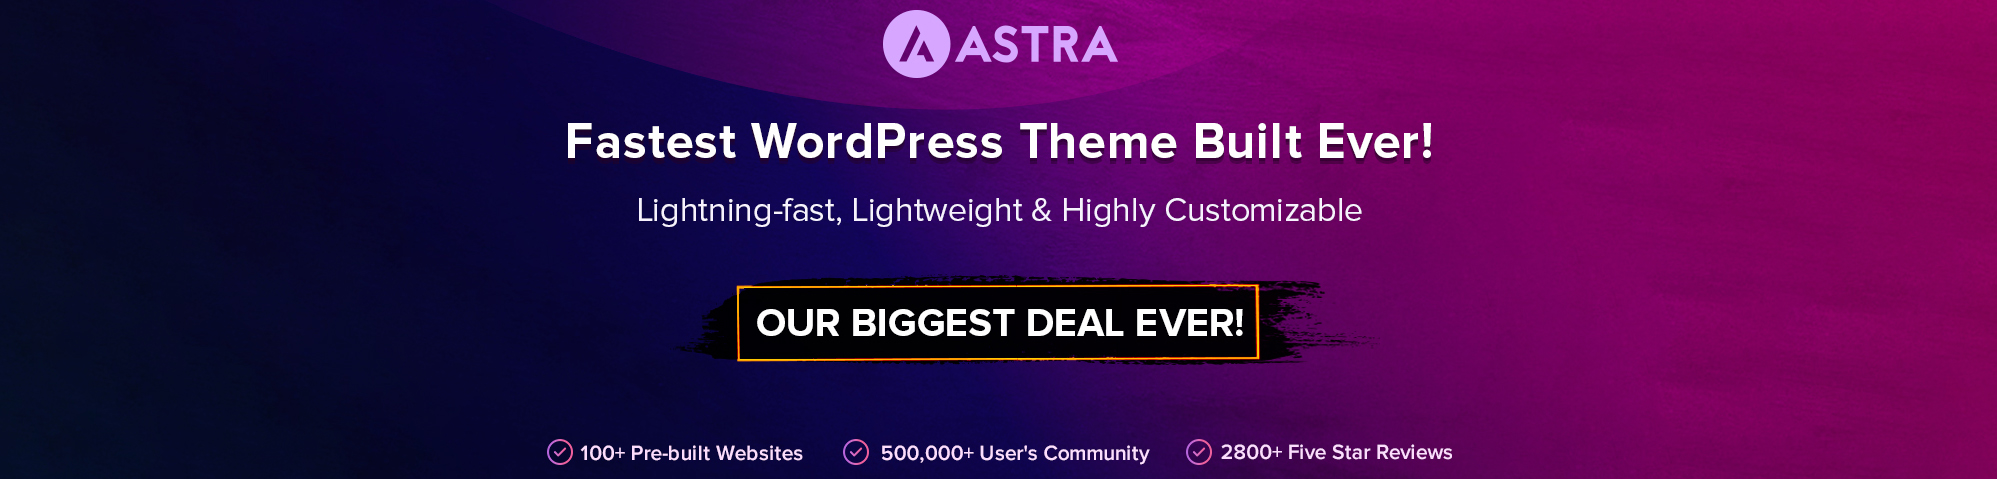 Astra Premium WordPress Themes